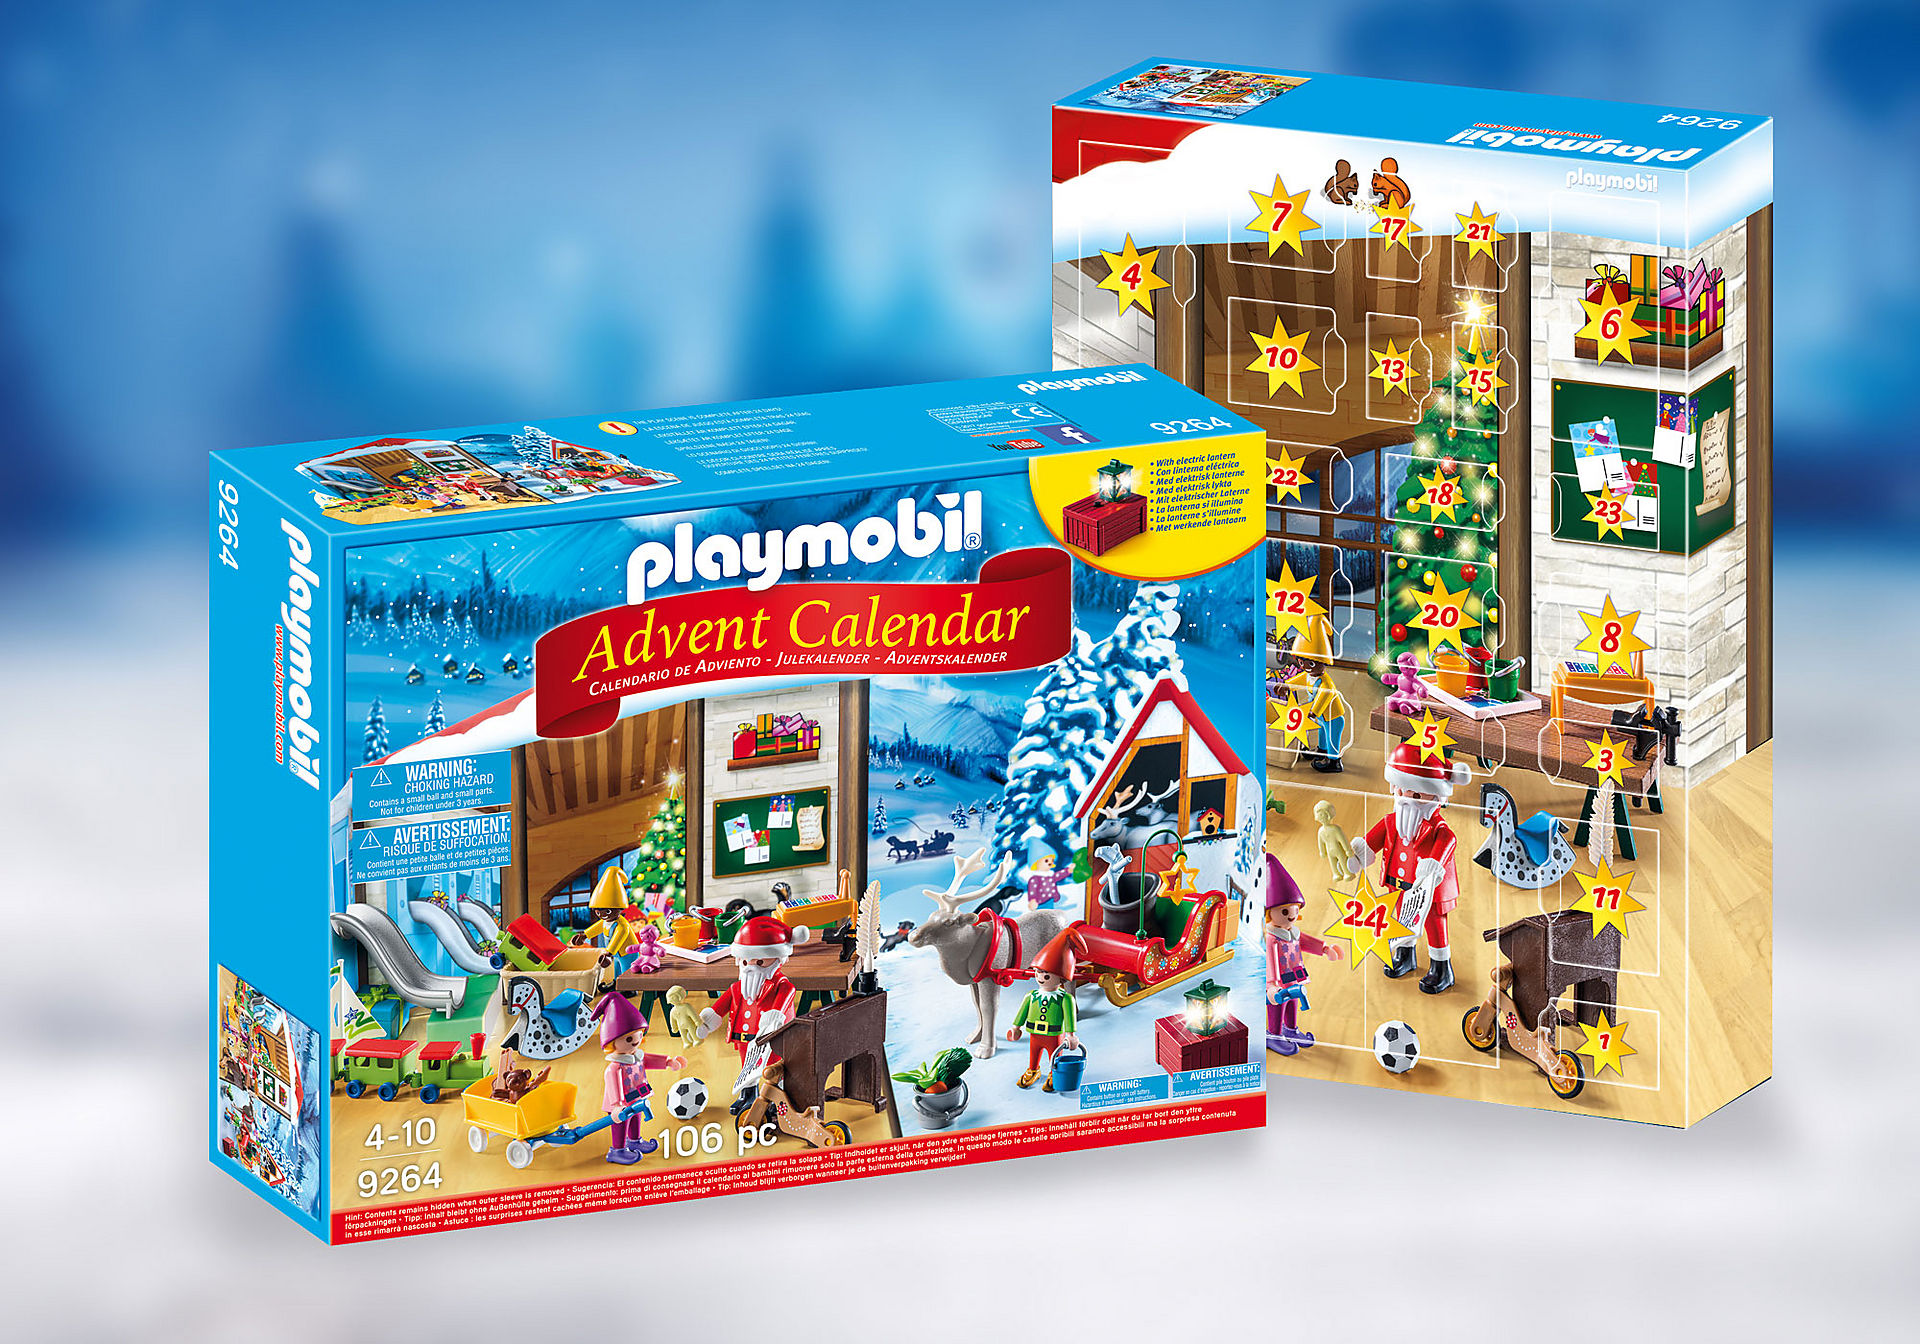 http://media.playmobil.com/i/playmobil/9264_product_detail/Advent Calendar - Santa's Workshop